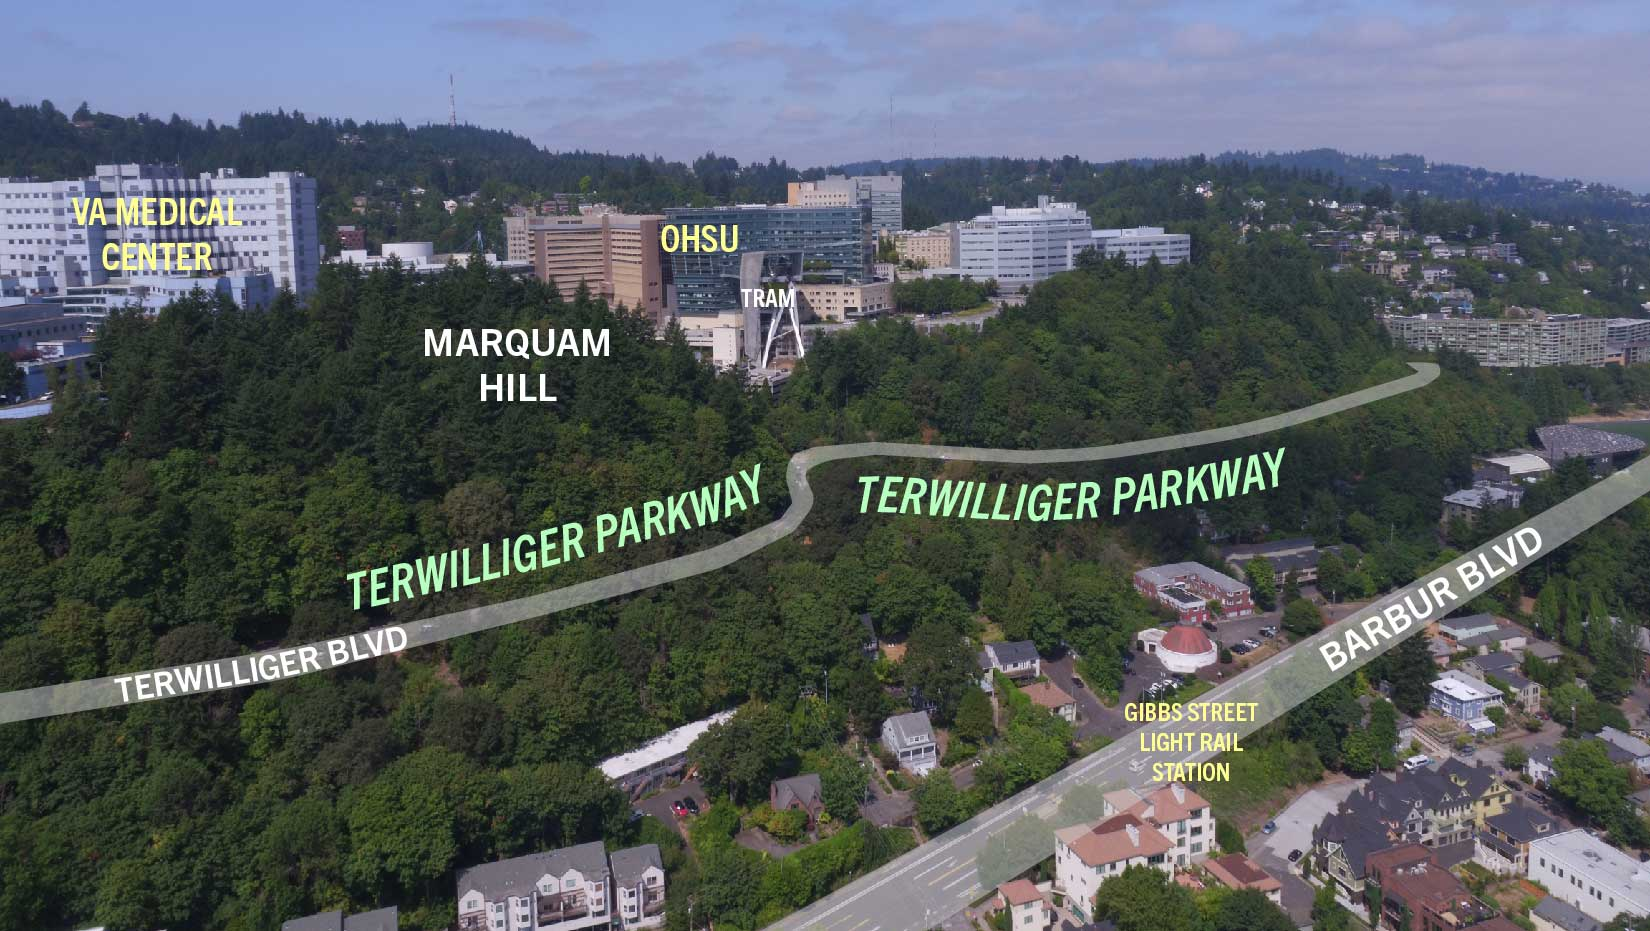 bird's eye view of Marquam Hill